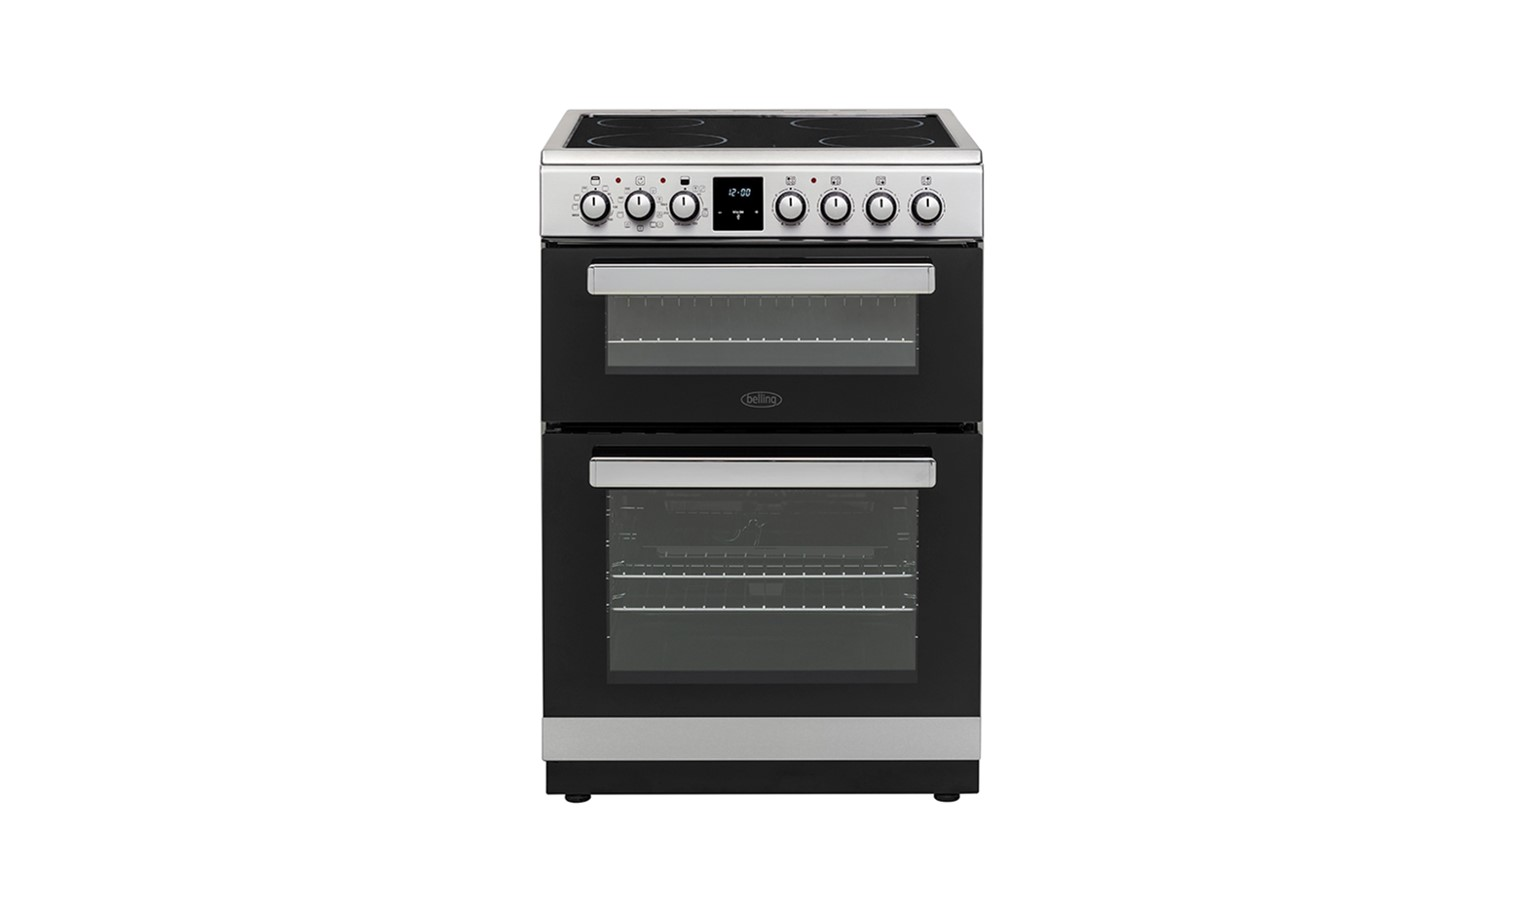 Belling FSE608MFC Electric Cooker with Ceramic Hob - Stainless Steel